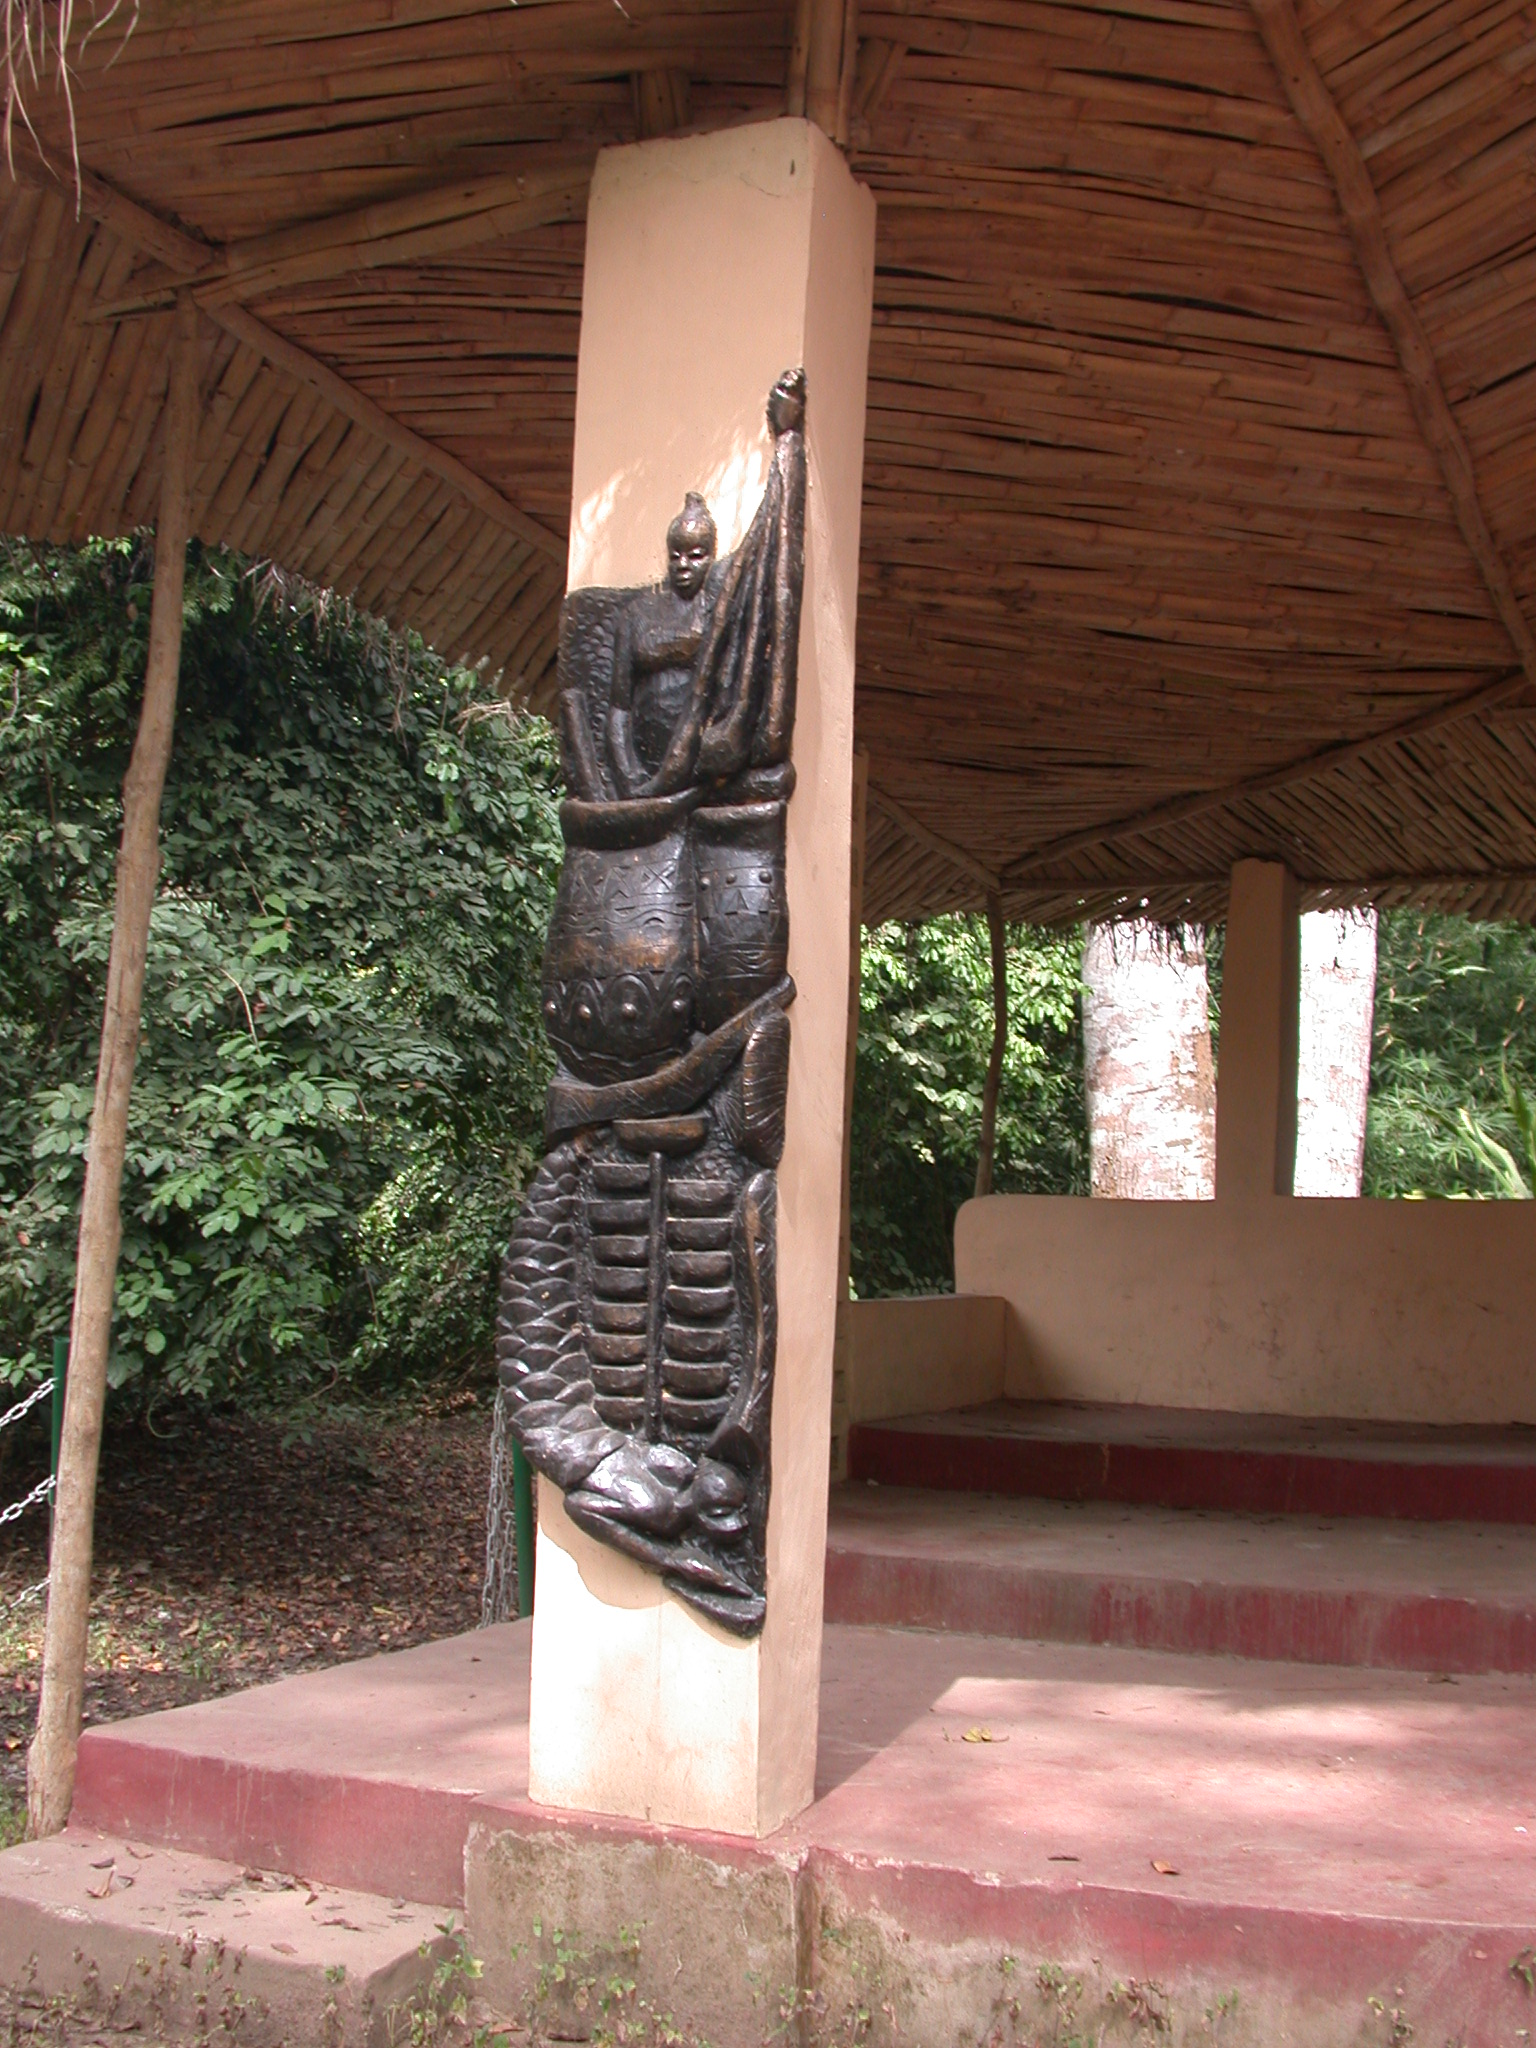 Art on Pillar of Ceremonial Platform, Osun Sacred Grove, Oshogbo, Nigeria